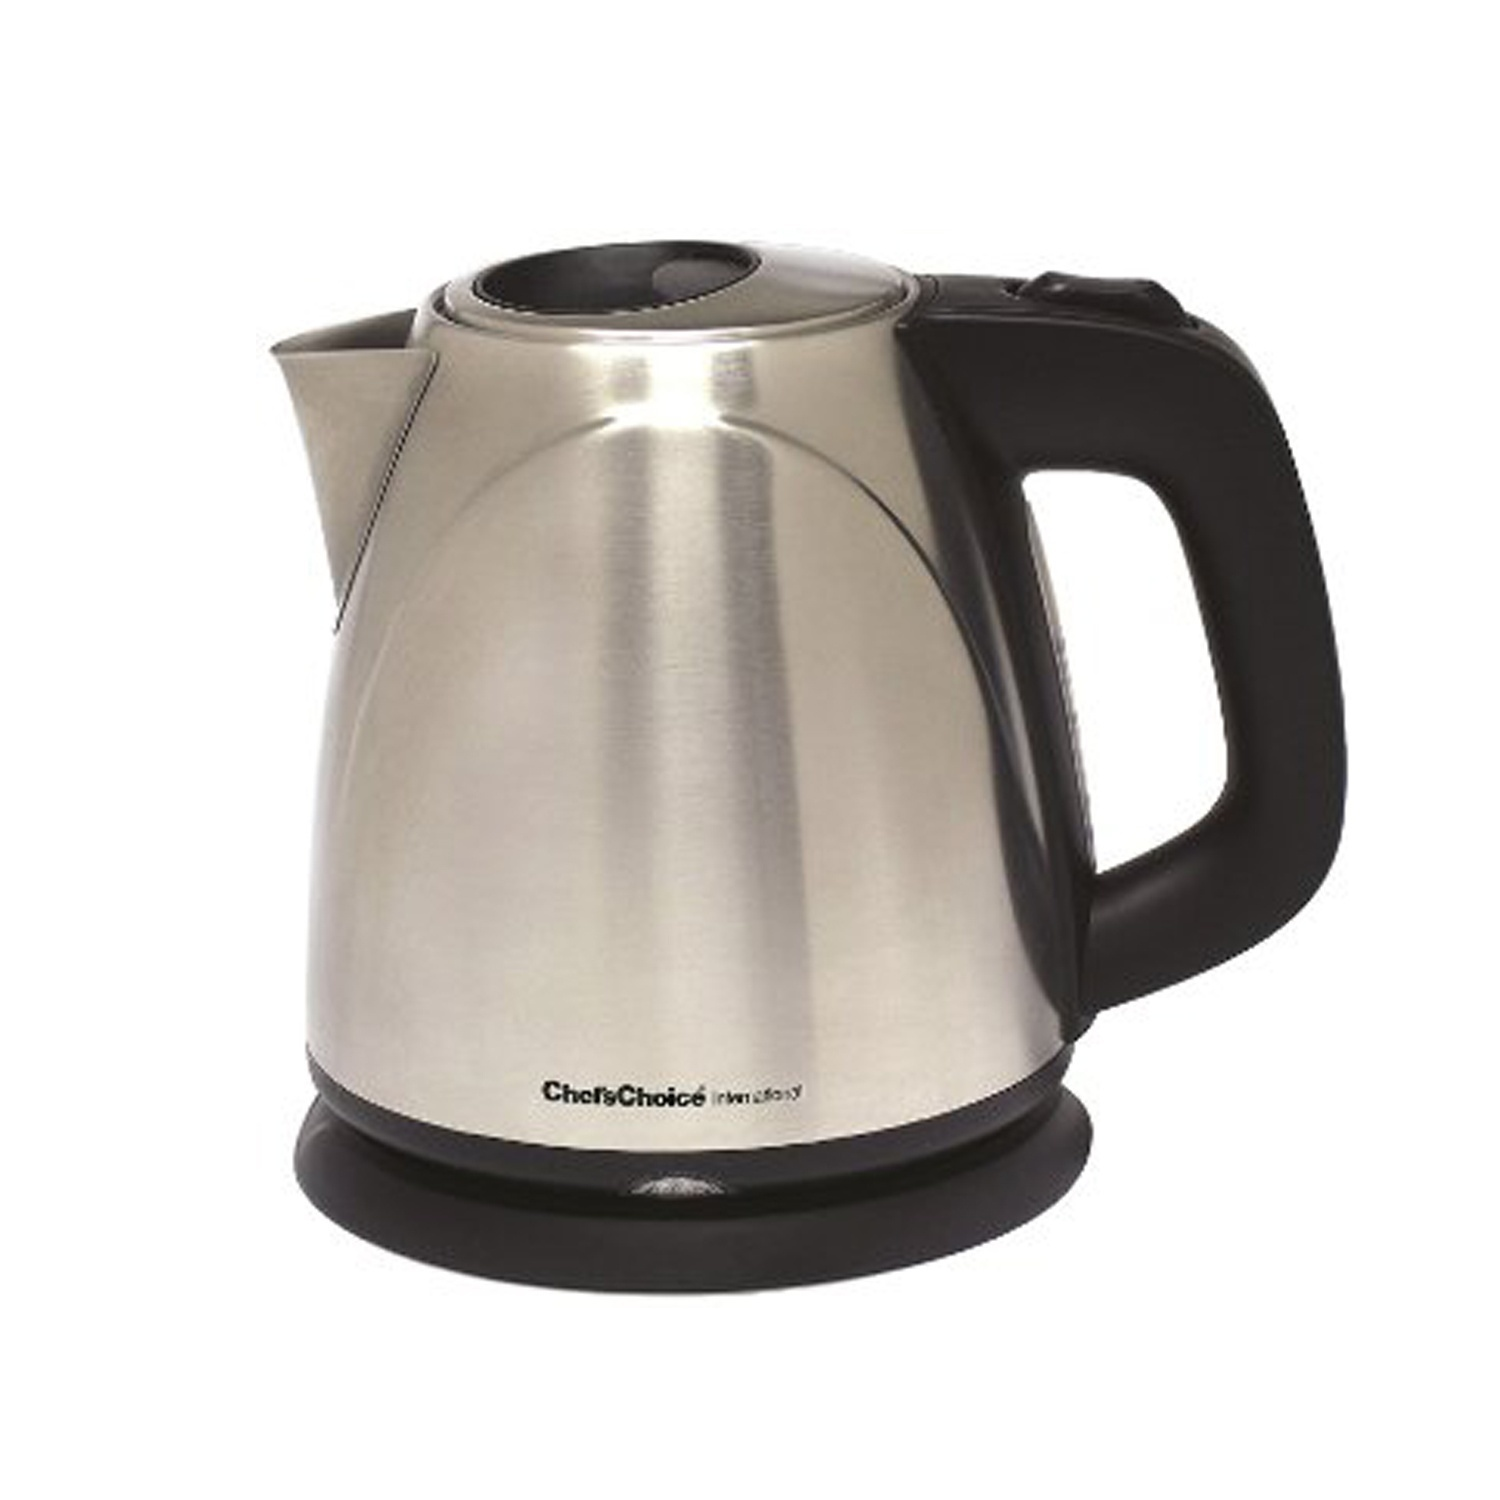 Chef's Choice 673 Cordless Compact Electric Kettle